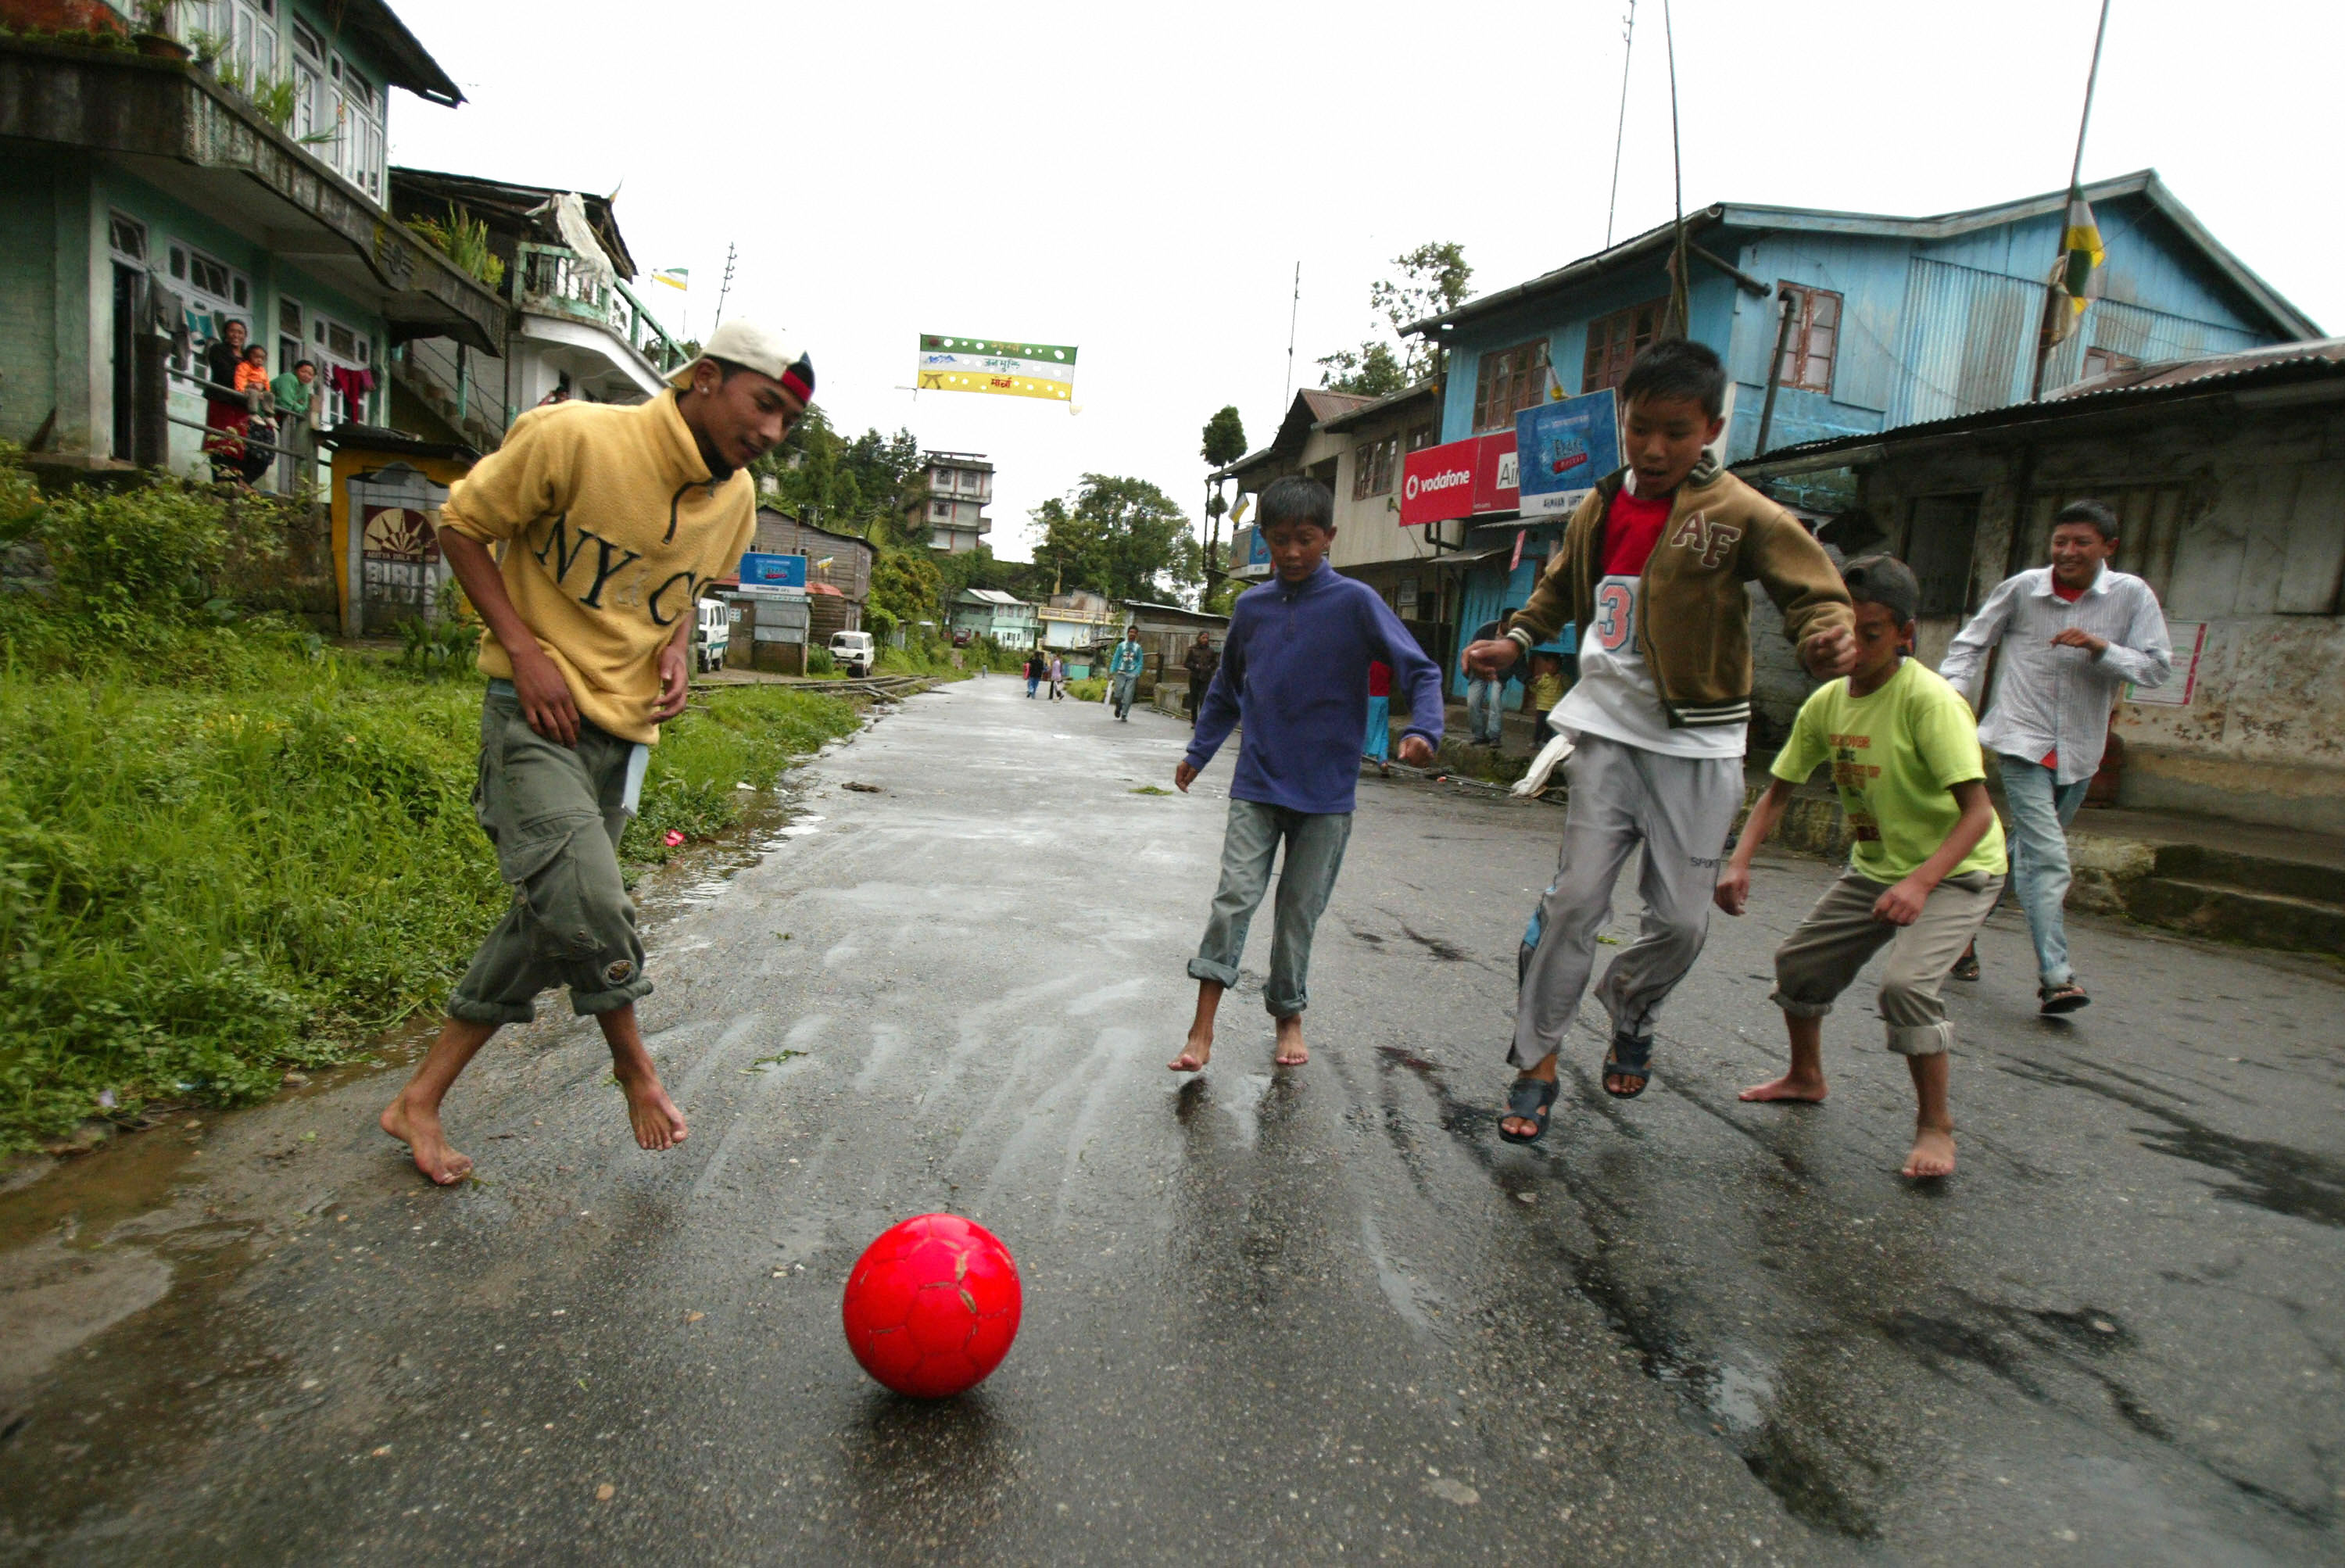 Indian children play football on a deserted road in Darjeeling on June 17, 2008, during first day of an indefinite strike in the Darjeeling Hill area. The The Gorkha People